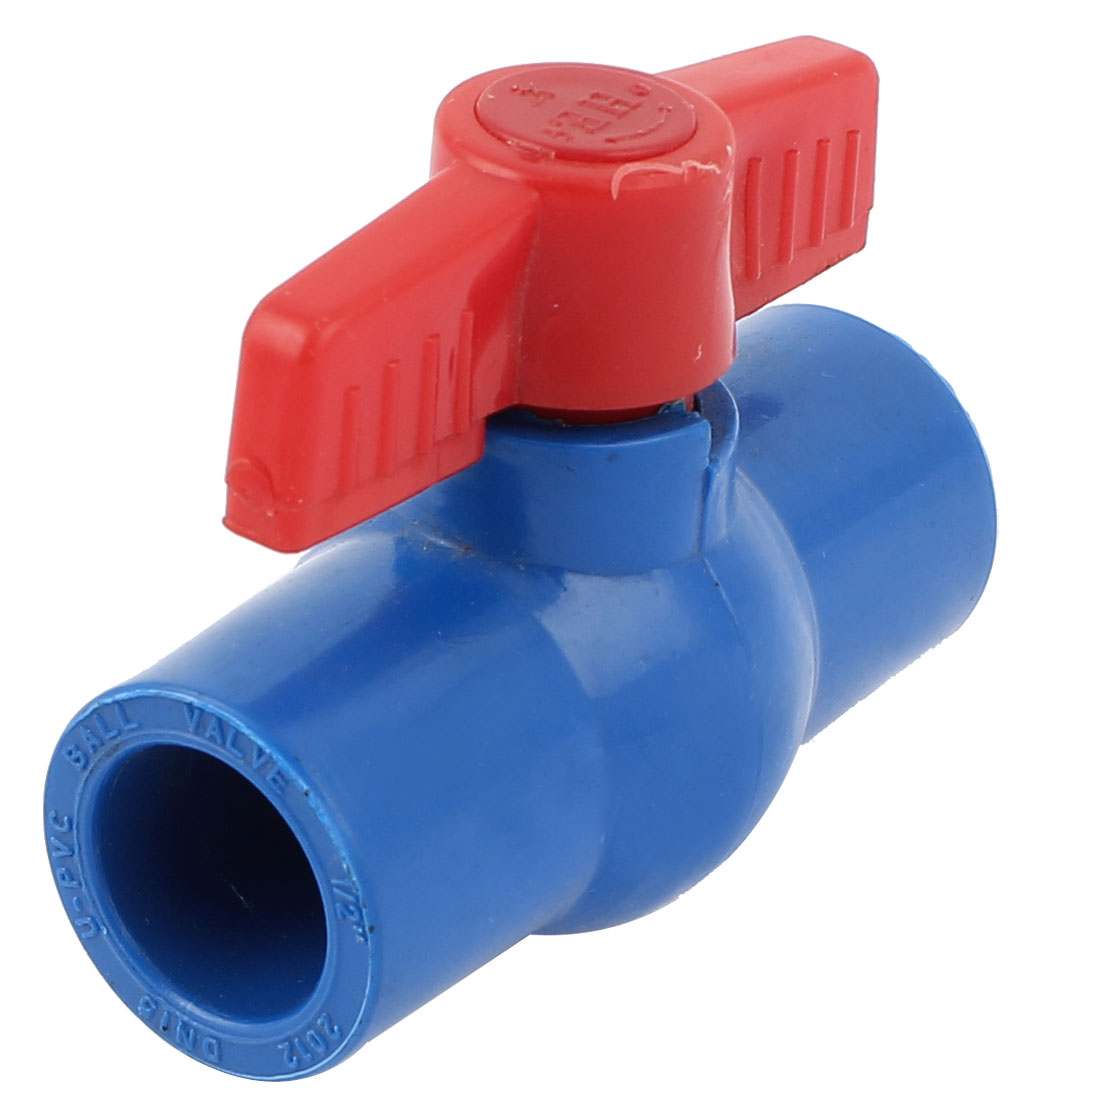 Plastic 20mm to 20mm Red Rotary Knob Tap Faucet Water Adjust Stop Valve